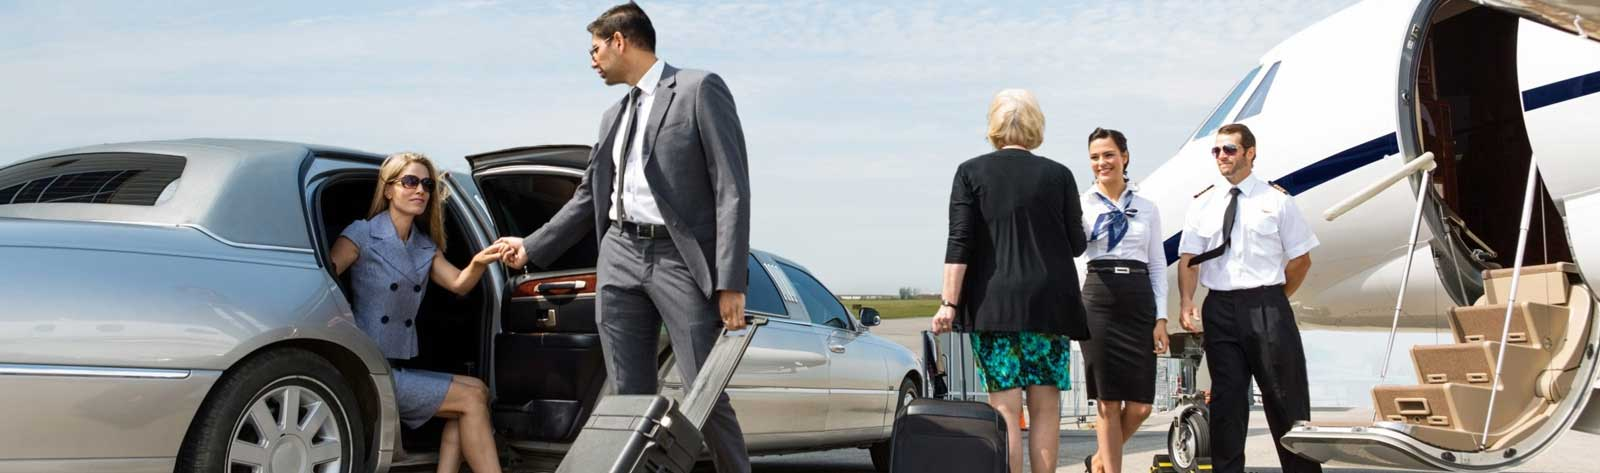 California Airport Transportation Limo Service